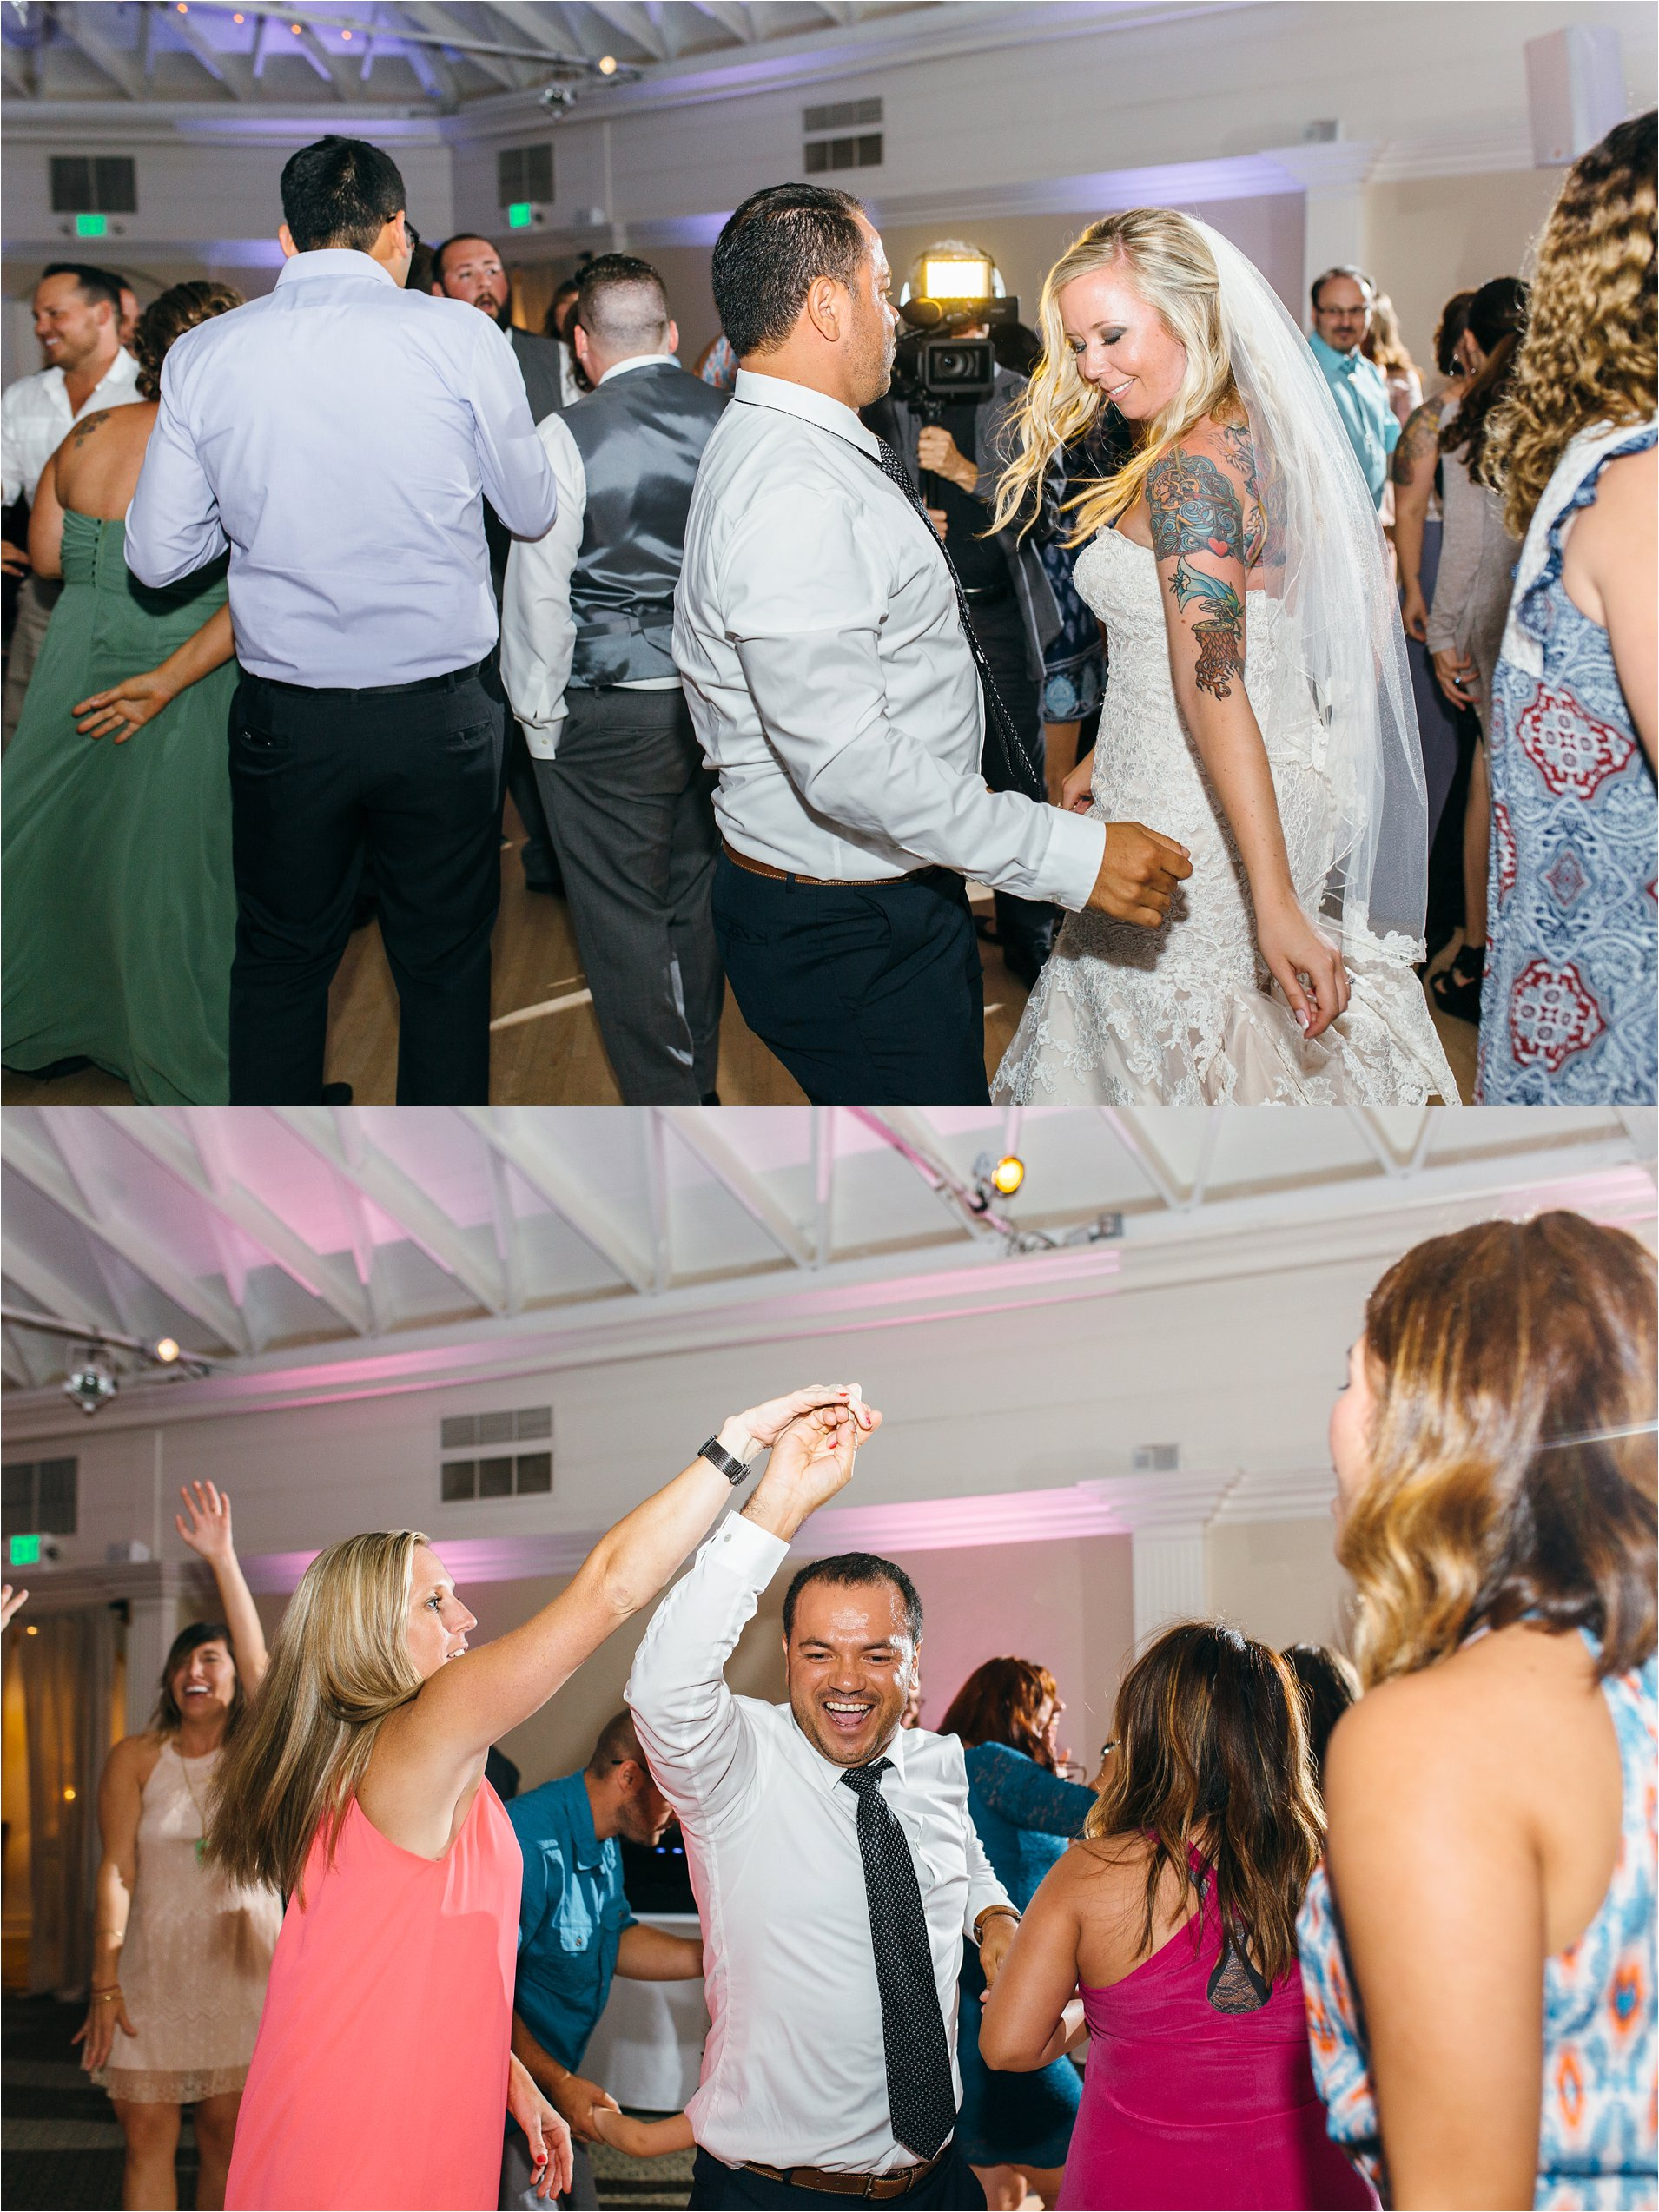 Guests Dancing at San Clemente Wedding